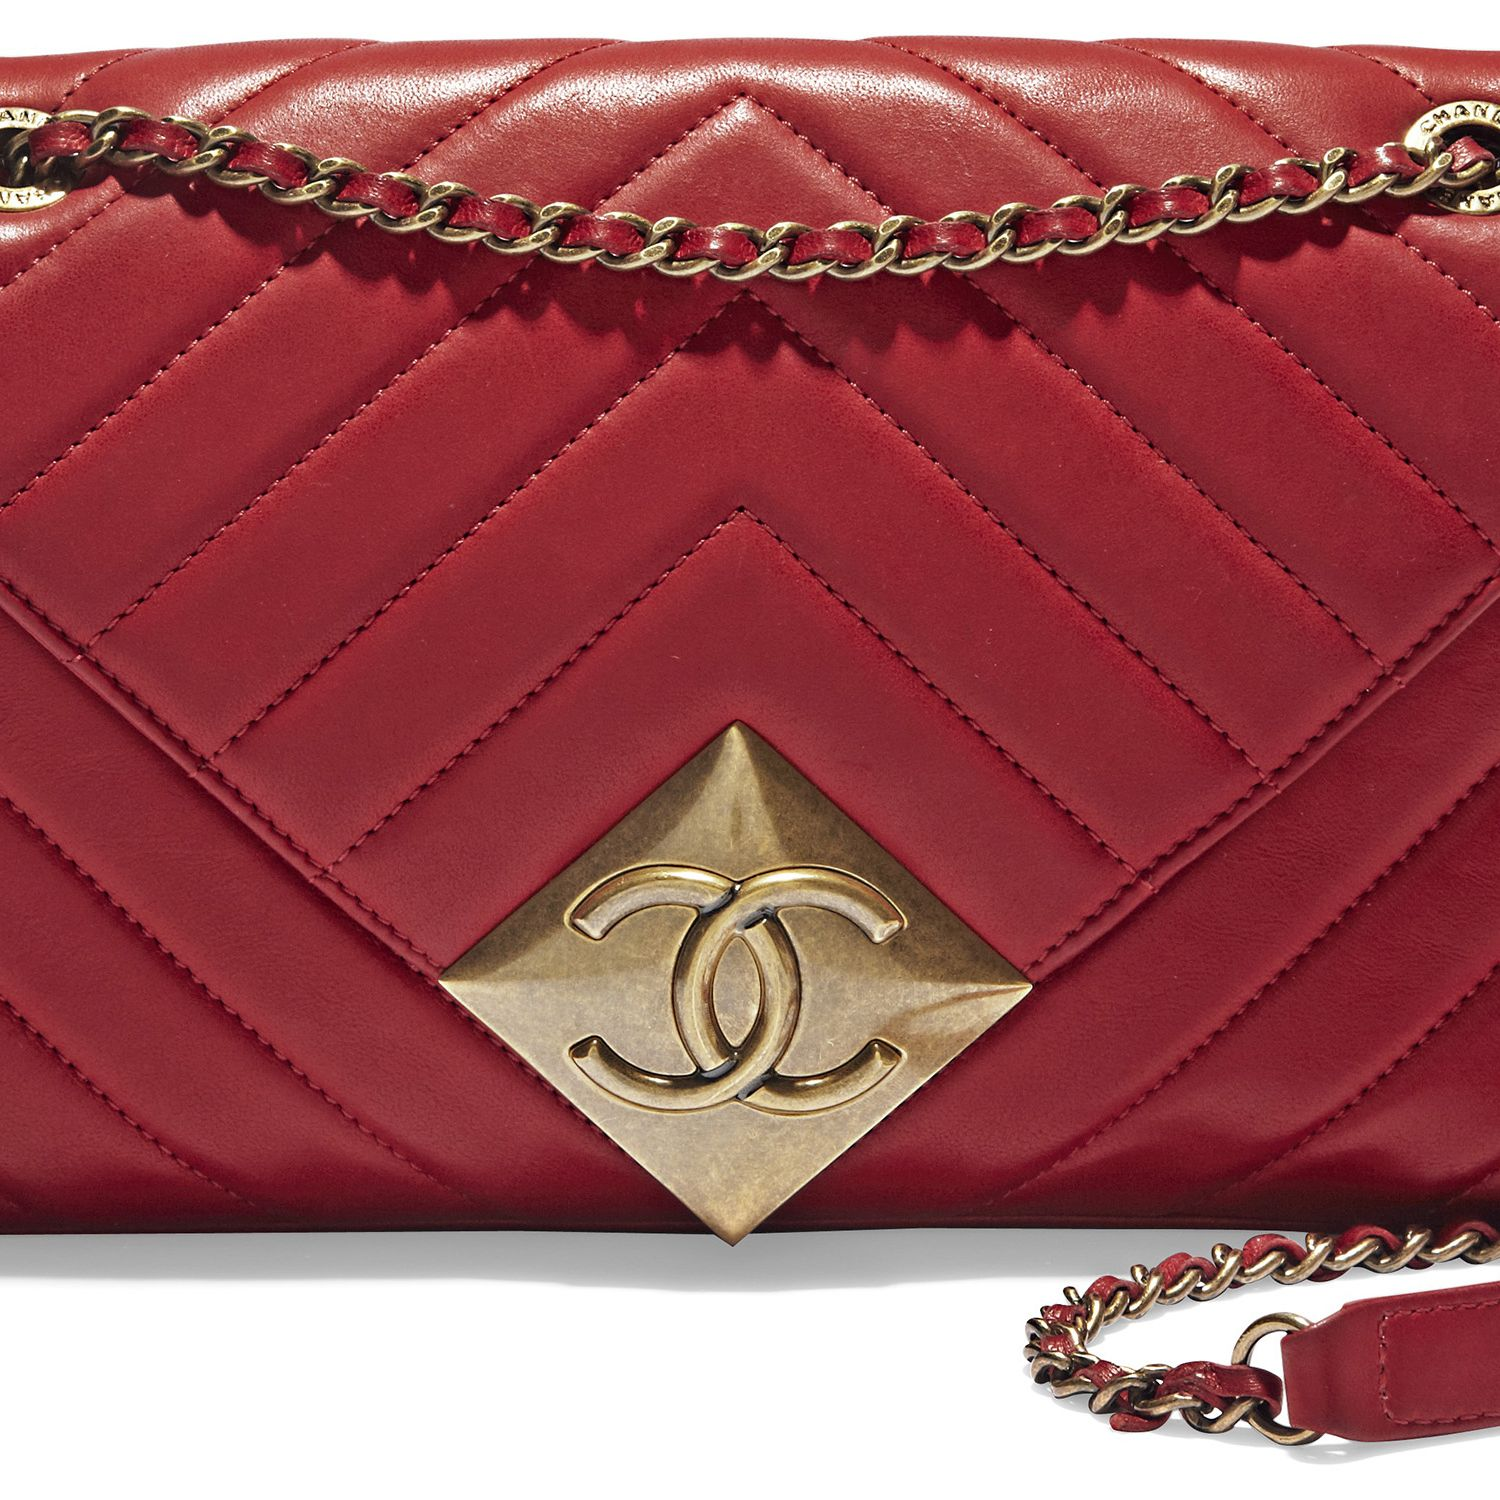 """<p><strong>Chanel</strong> bag, $3,800, <span class=""""redactor-invisible-space"""">Chanel 800-550-0005</span>.</p>"""